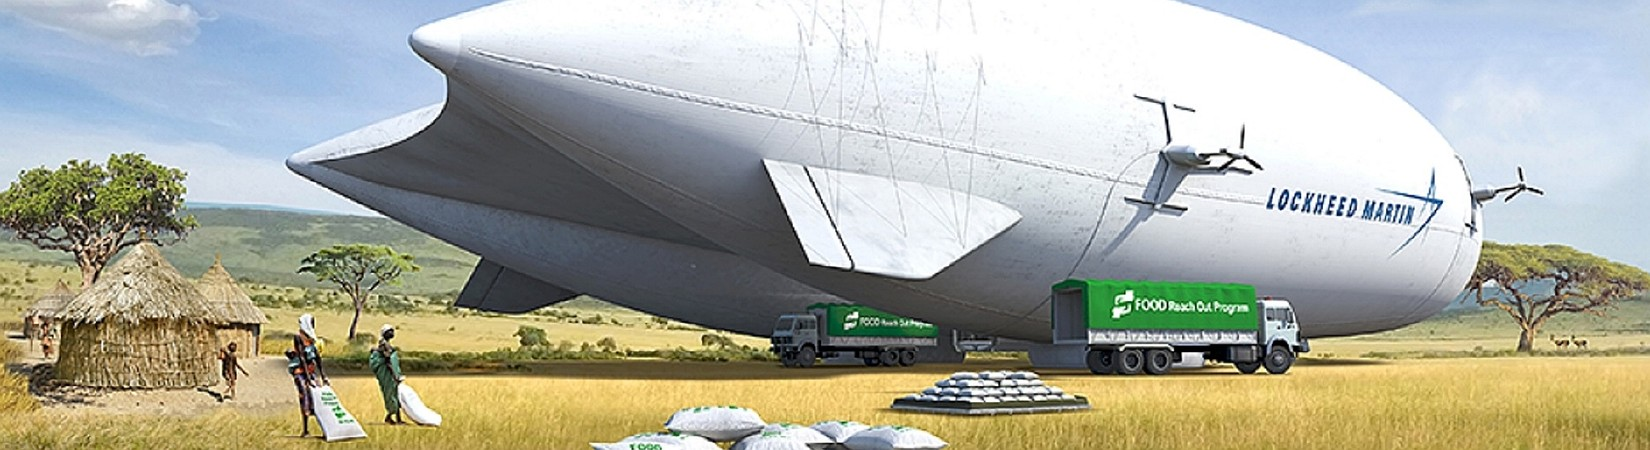 Gas explorer partners with Lockheed on helium airships